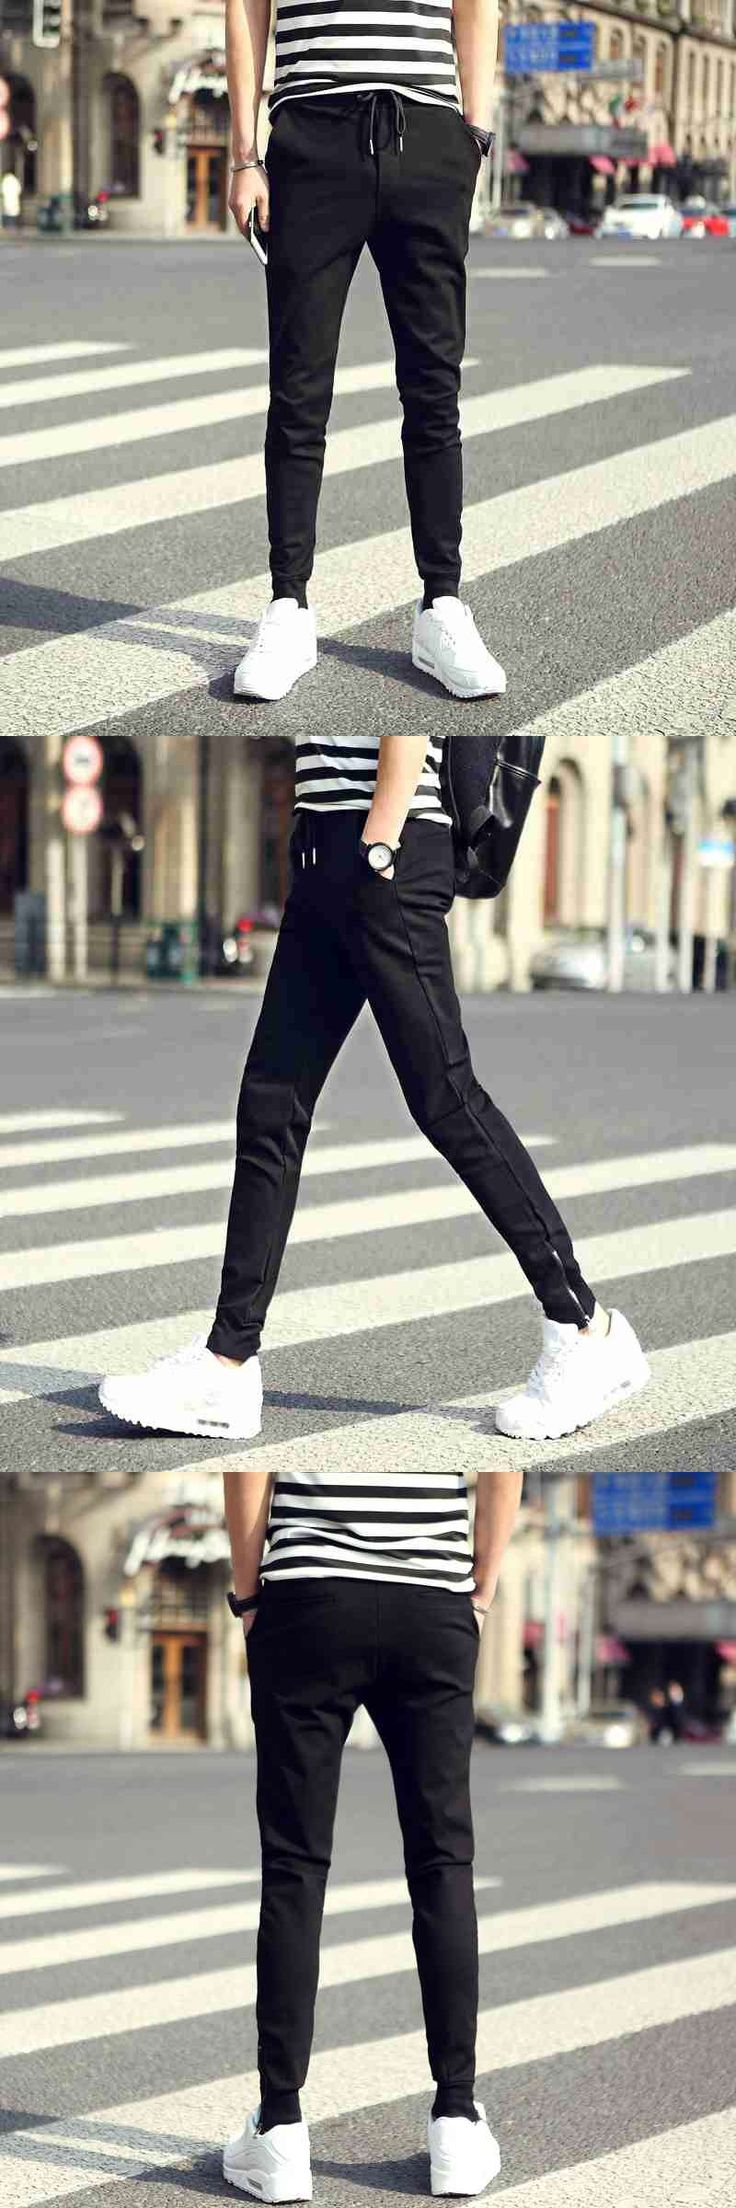 #2831 Spring Casual pencil pants Elastic waist Bottom with zipper Slim Fashion Plus size M-3XL Joggers men Compression tights